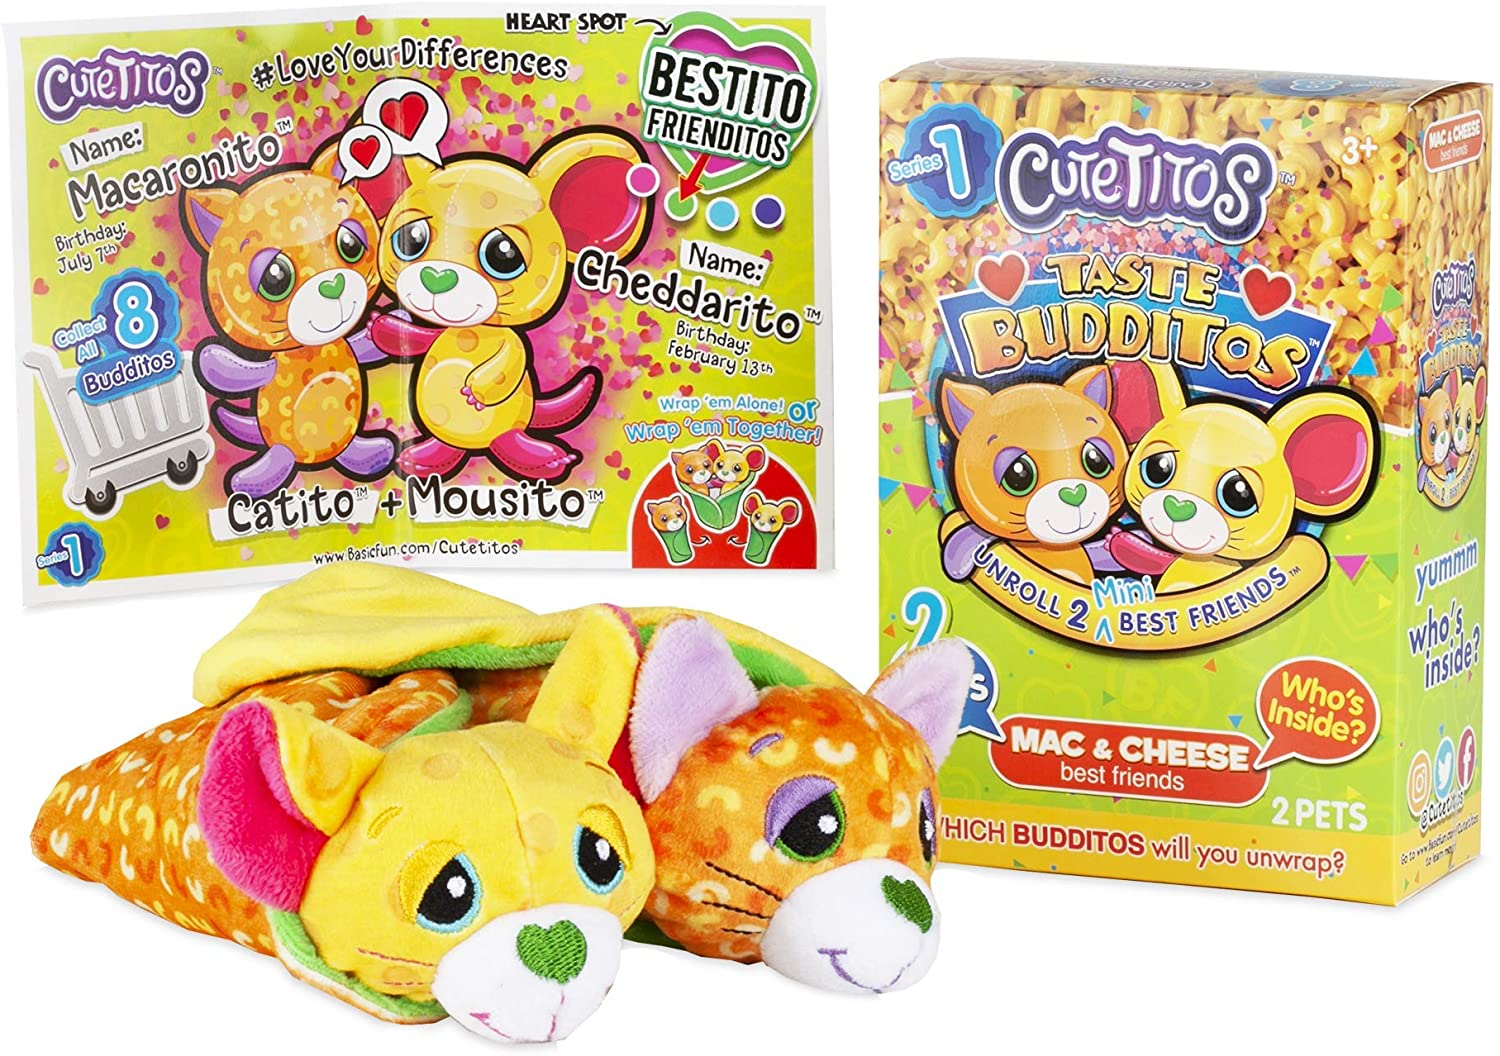 Basic Fun Cutetitos Taste Budditos Mac & Cheese - 2 Collectible Plush Mini Animals - Ages 3+ - Series 1 - Great Gift for Girls and Boys